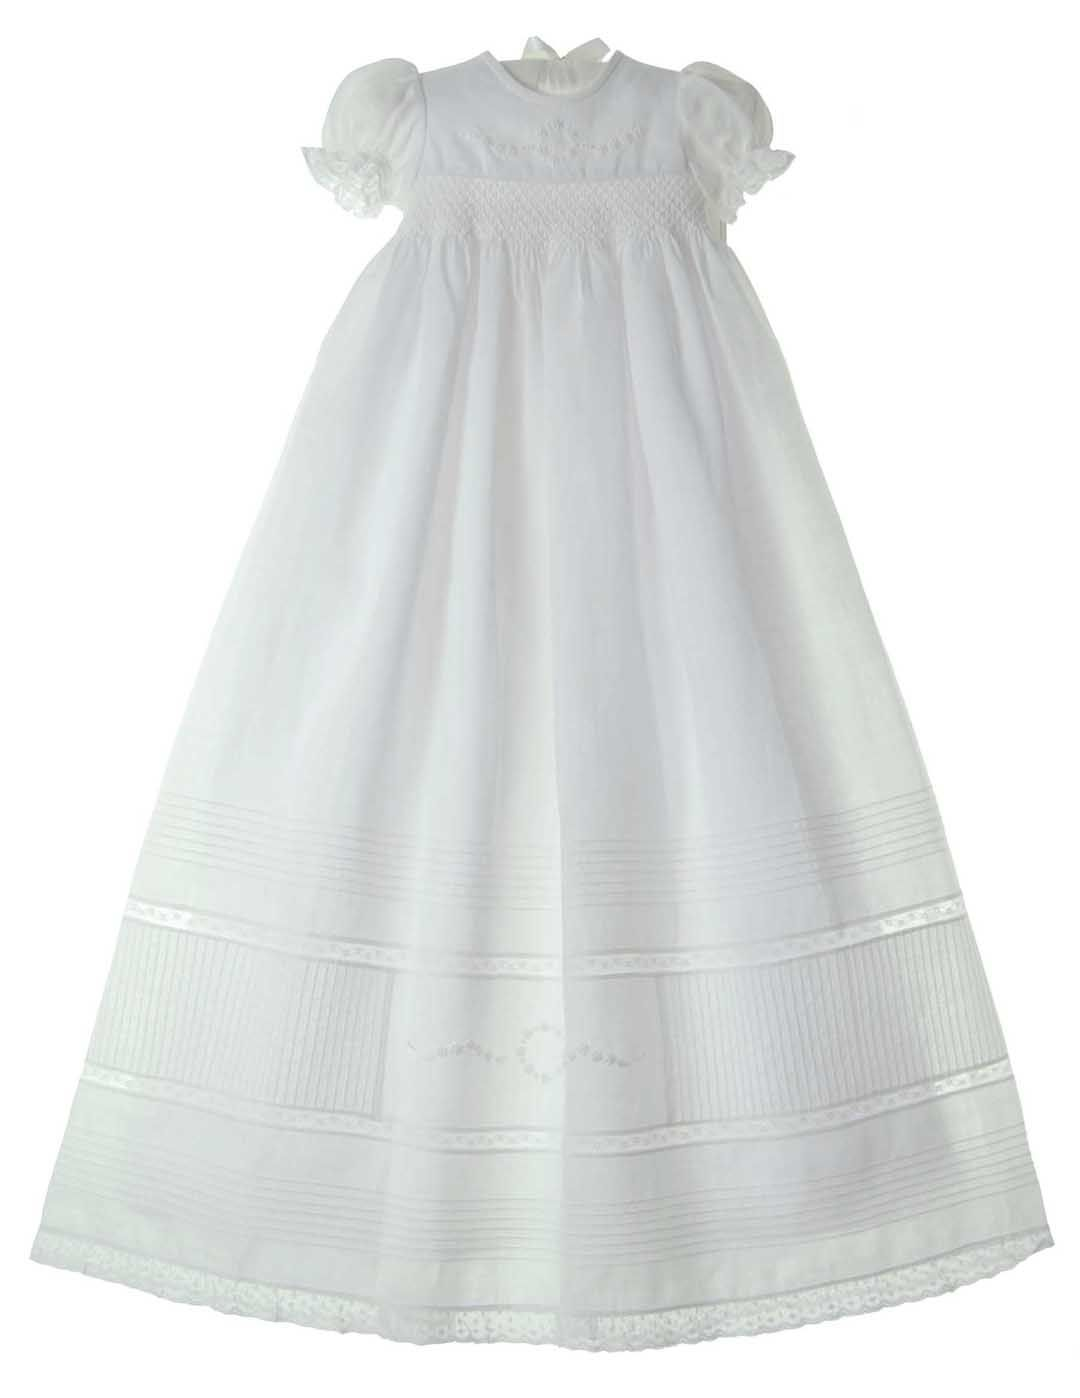 1db62e251 NEW Will'Beth White Linen Smocked Christening Gown with Pintucks,  Embroidery, and Seed Pearls $175.00